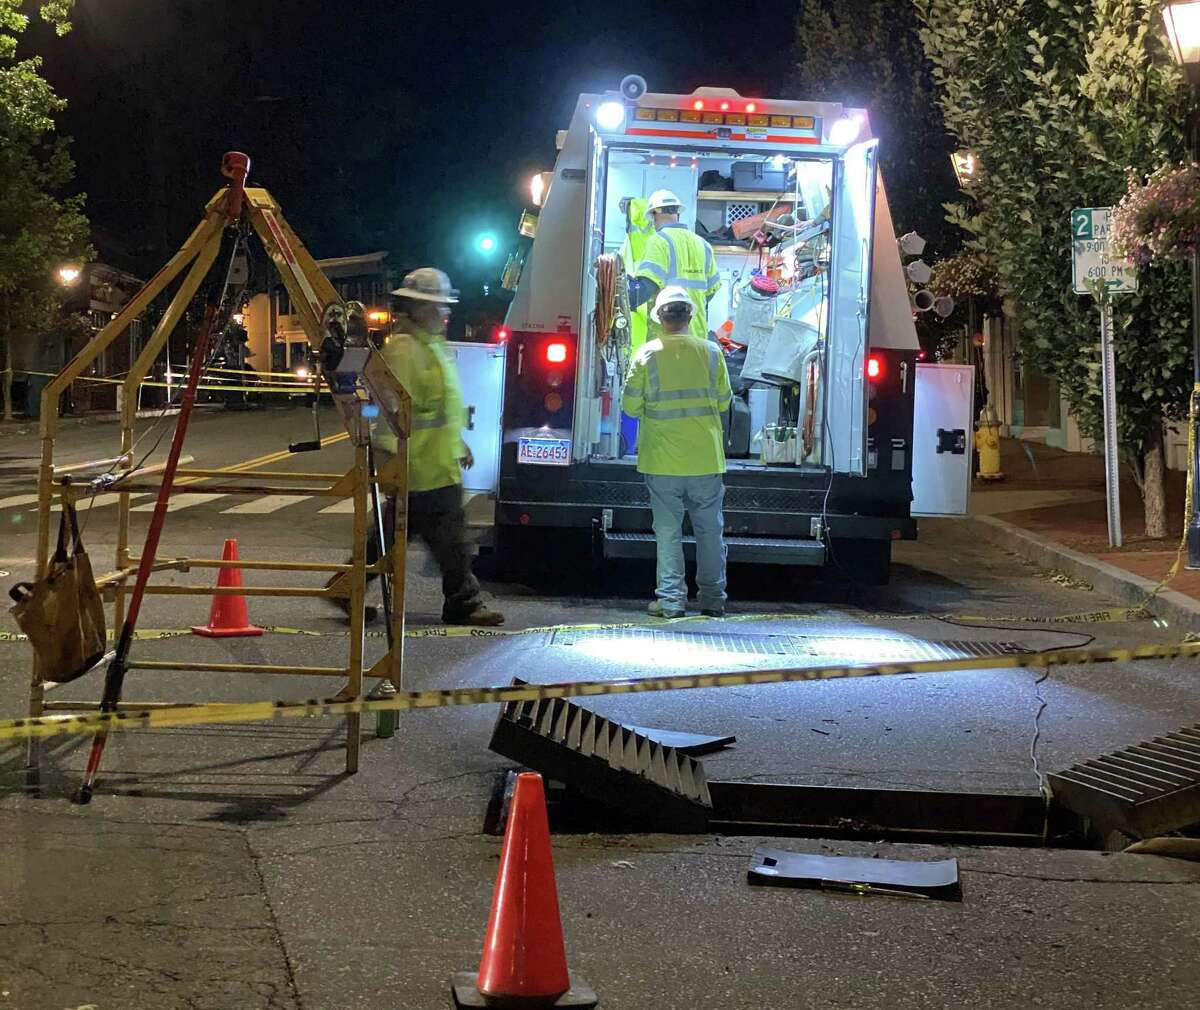 Elm Street has reopened after Eversource crews worked overnight after fire and smoke were seen coming up through the grates where transformers are located in vaults underground on Elm on Wednesday, Aug. 4.